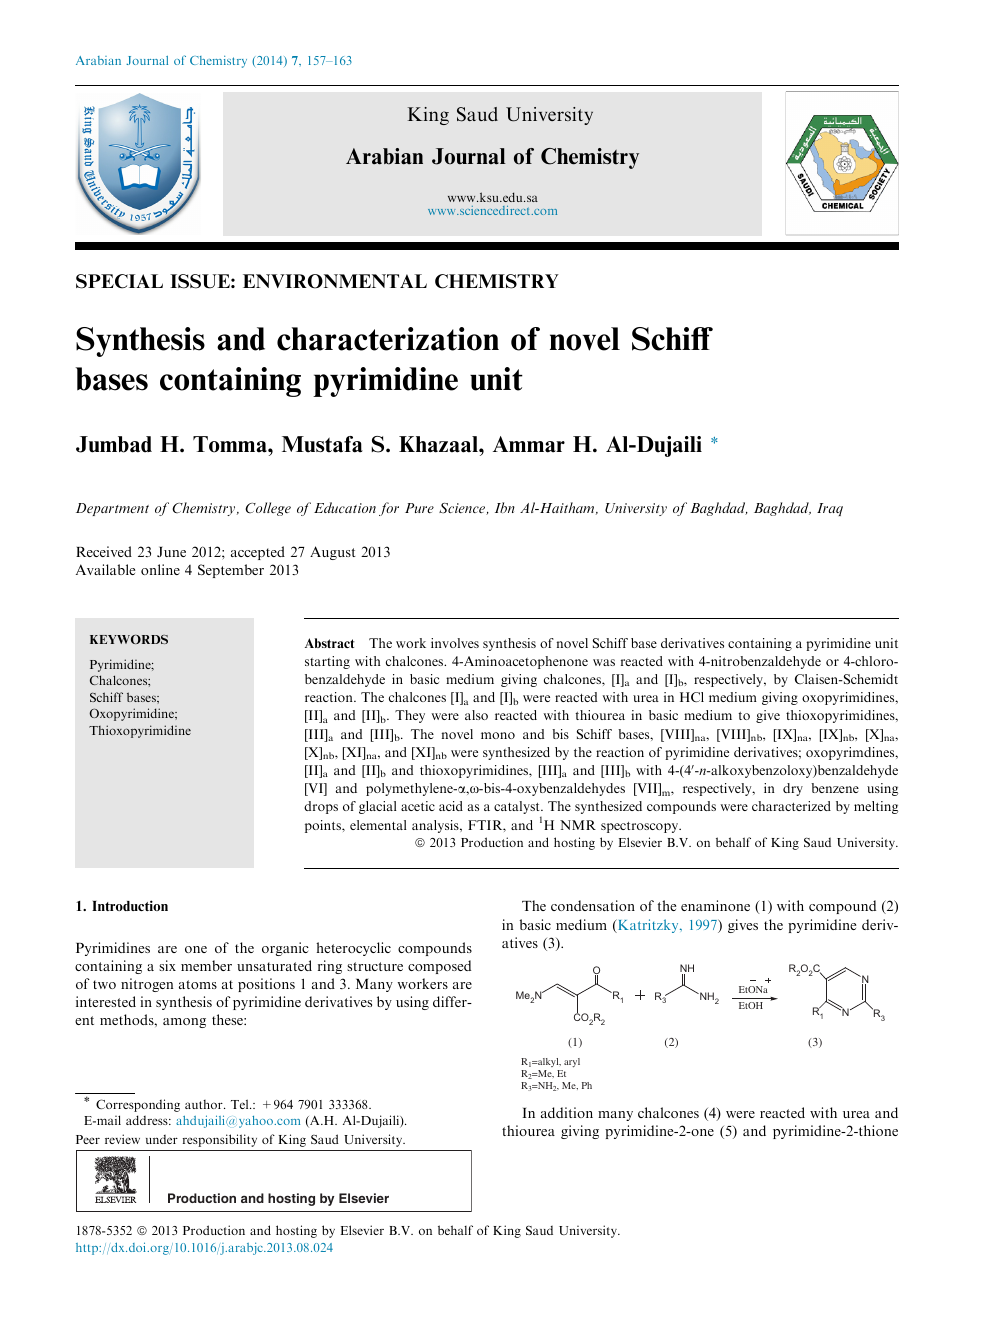 Synthesis and characterization of novel Schiff bases containing